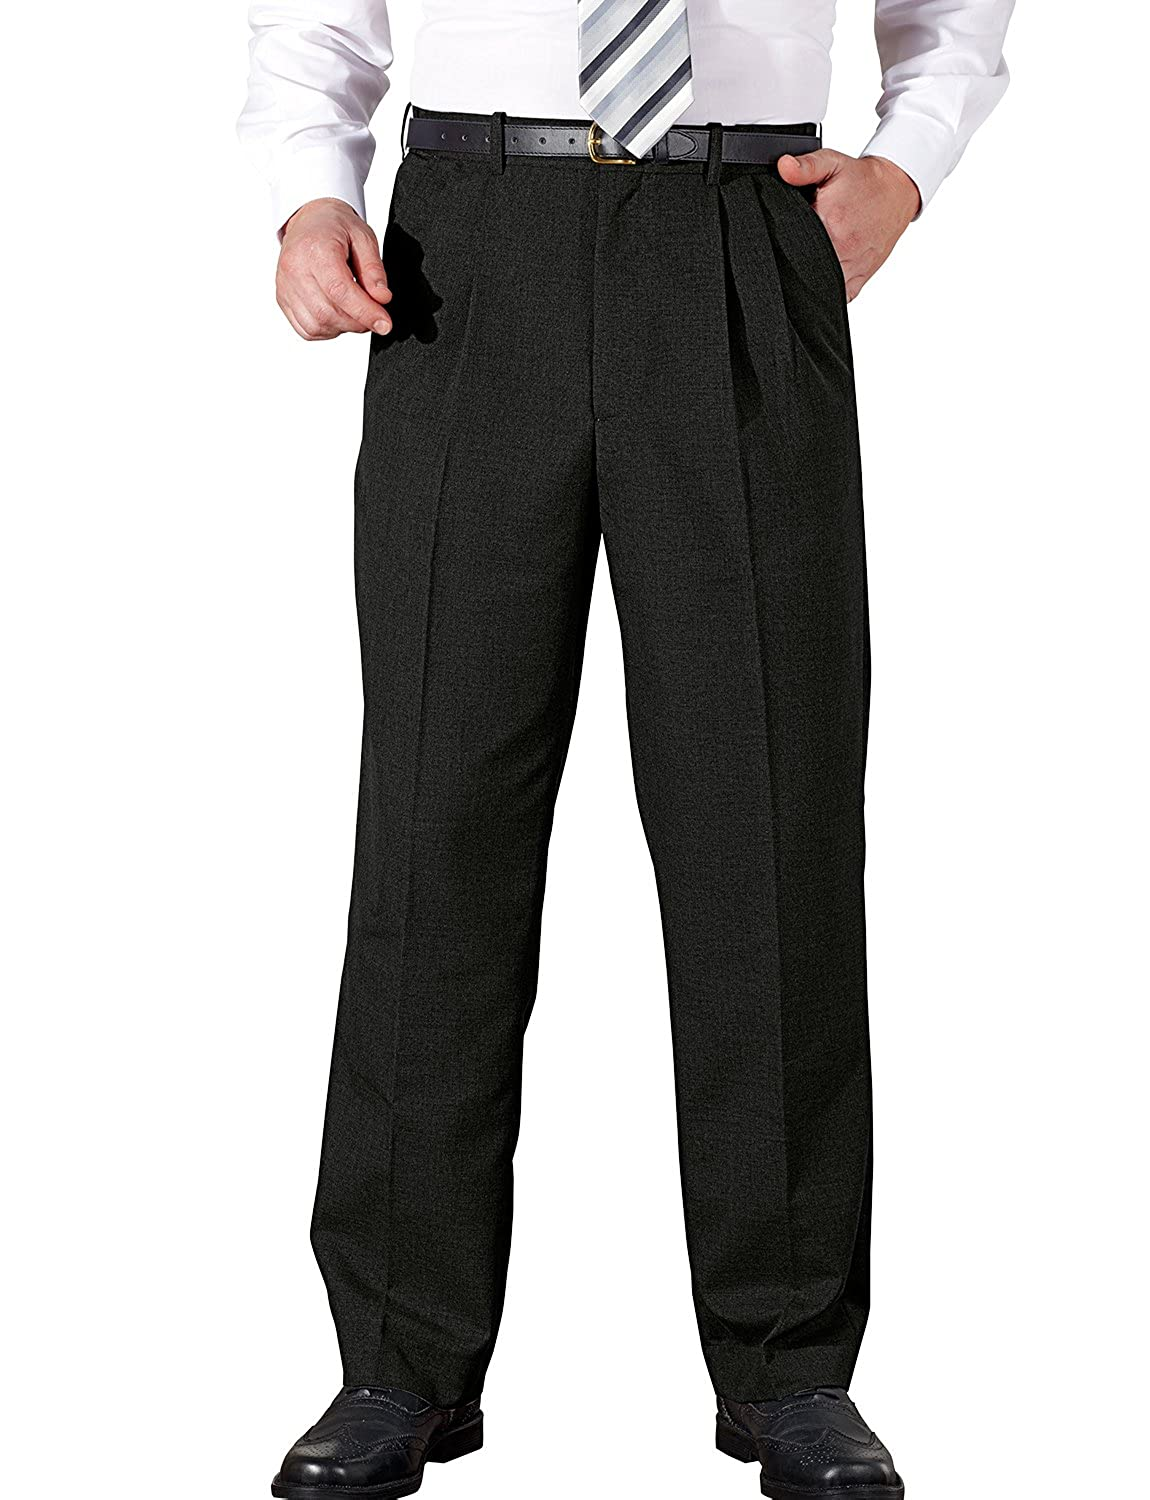 1920s Men's Pants, Trousers, Plus Fours, Knickers Chums Mens High Waisted with Hidden Waistband Pleated Trouser Pants £25.00 AT vintagedancer.com